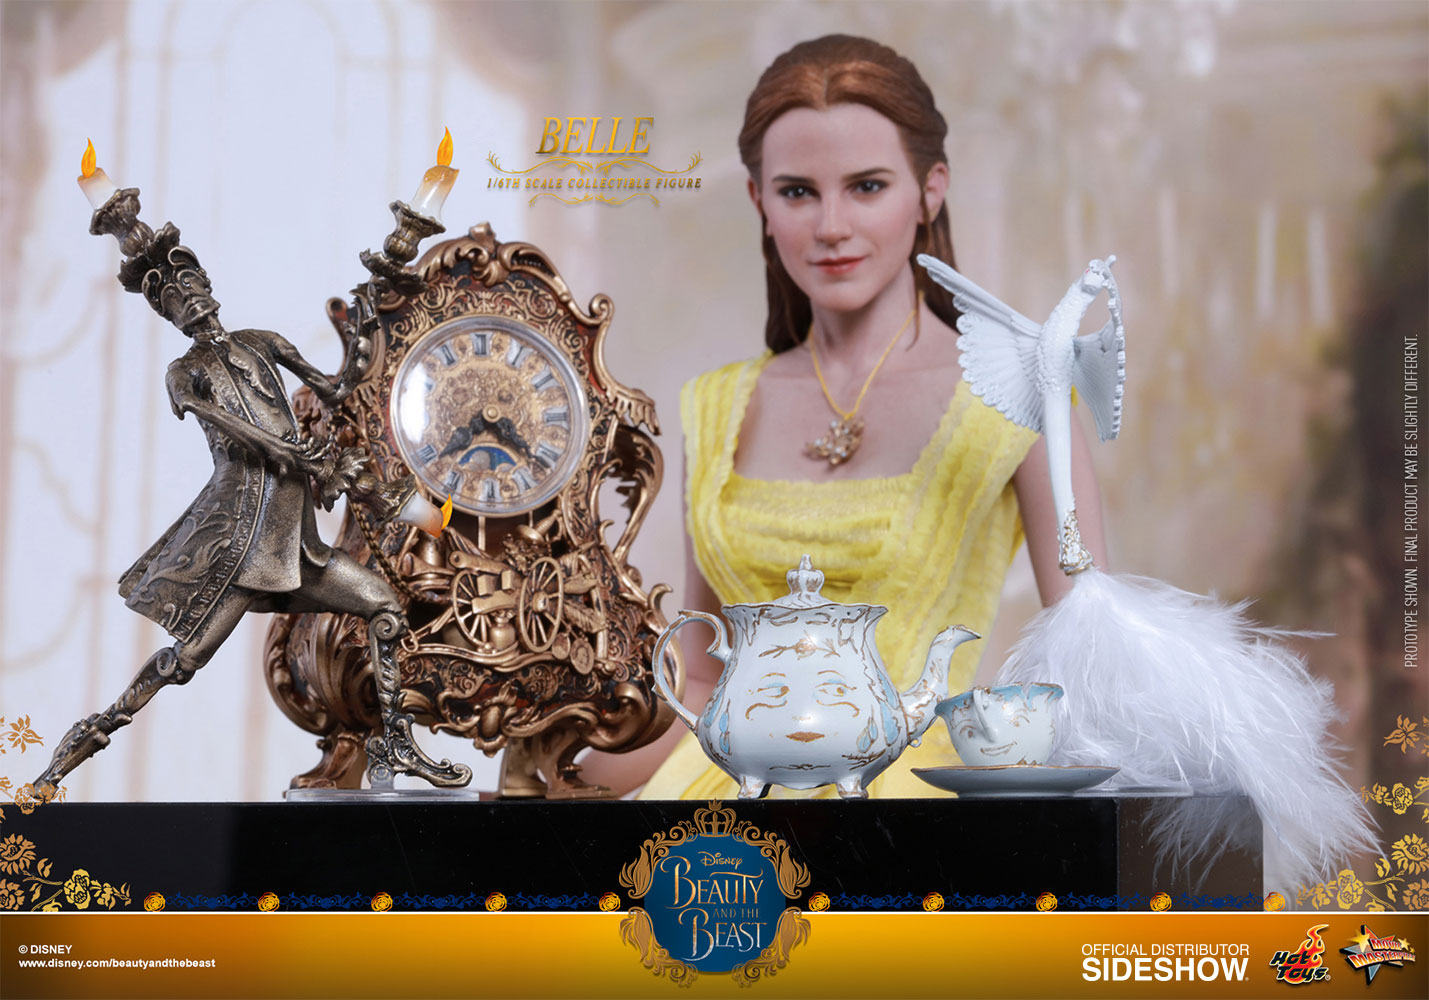 1 6 Belle Beauty And The Beast 2017 Statue Forum